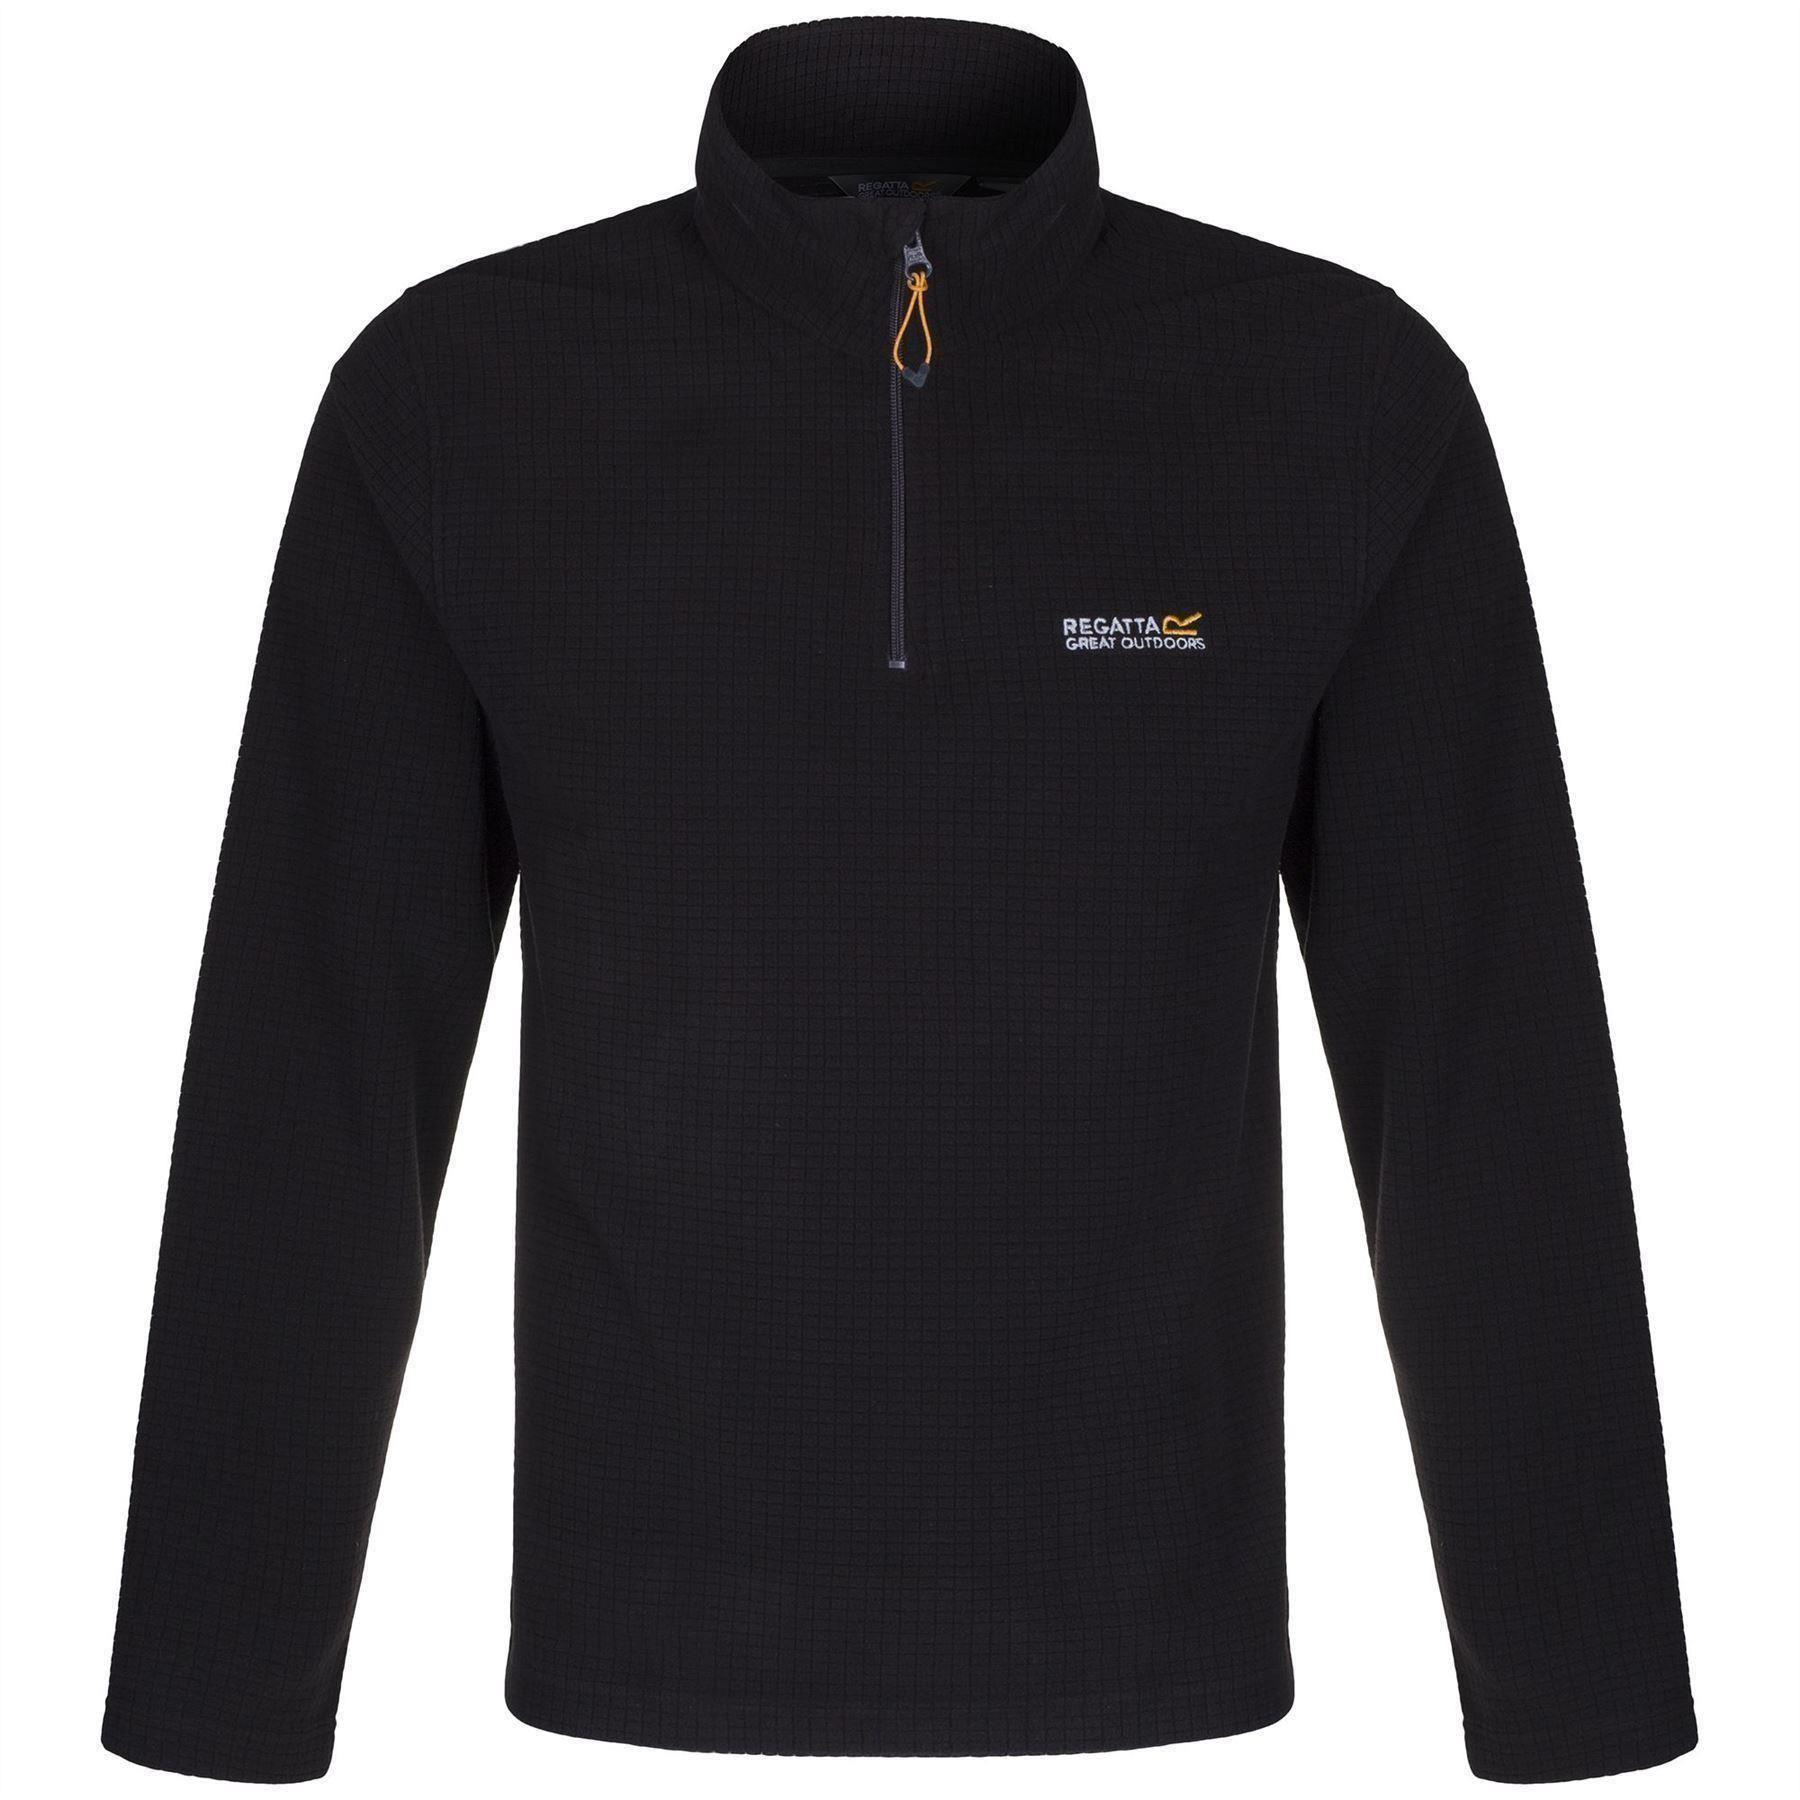 Regatta-Elgon-para-hombre-Half-Zip-Fleece-Pullover-Jumper-Top-RMA236 miniatura 5